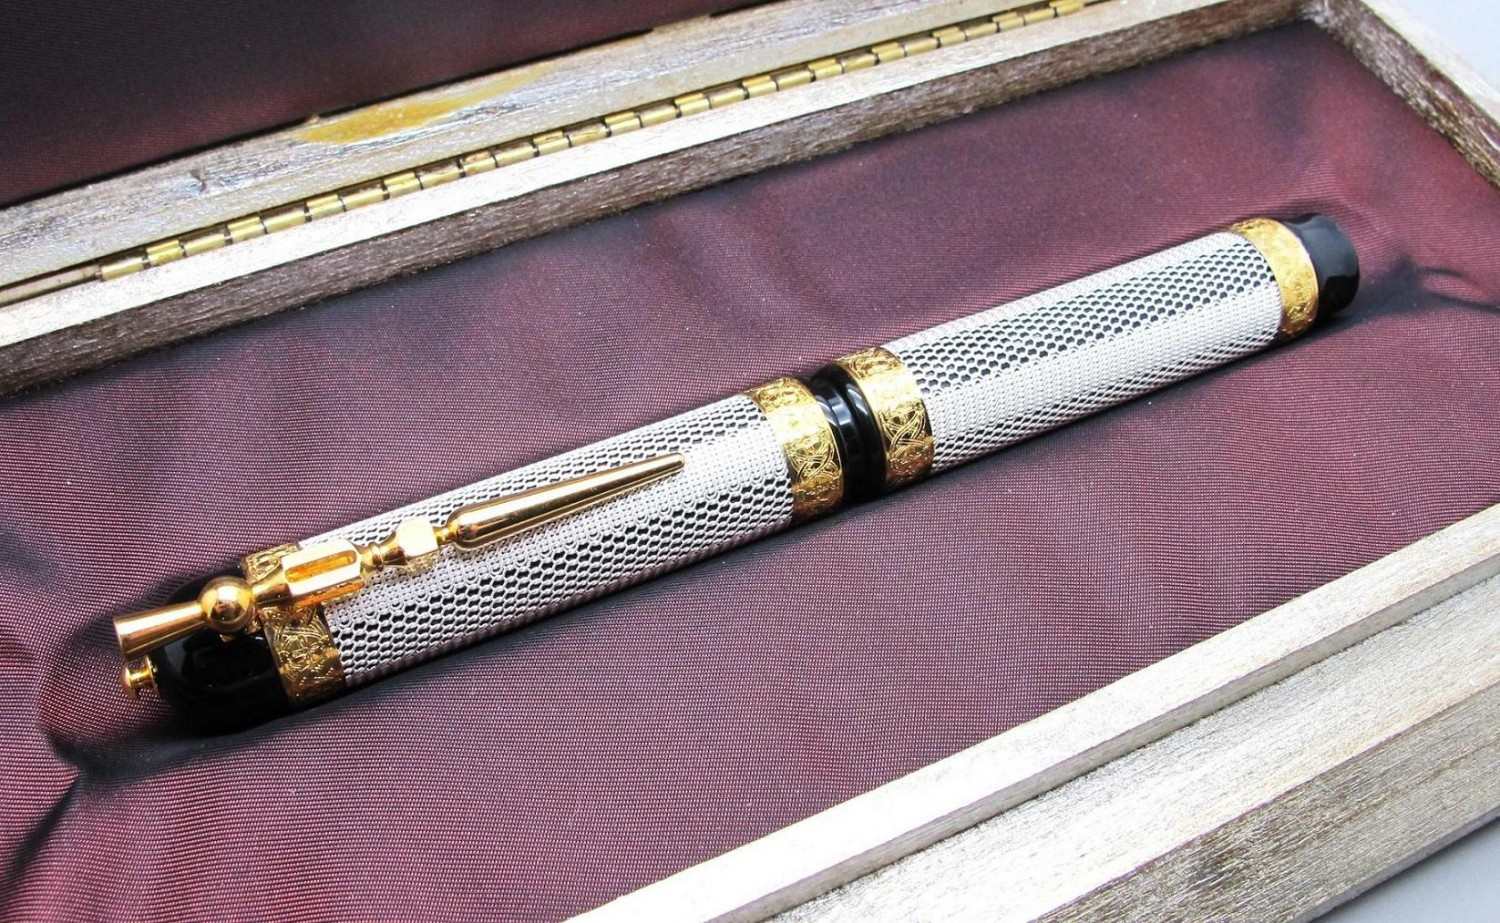 Visconti Camelot Filigrana de Plata